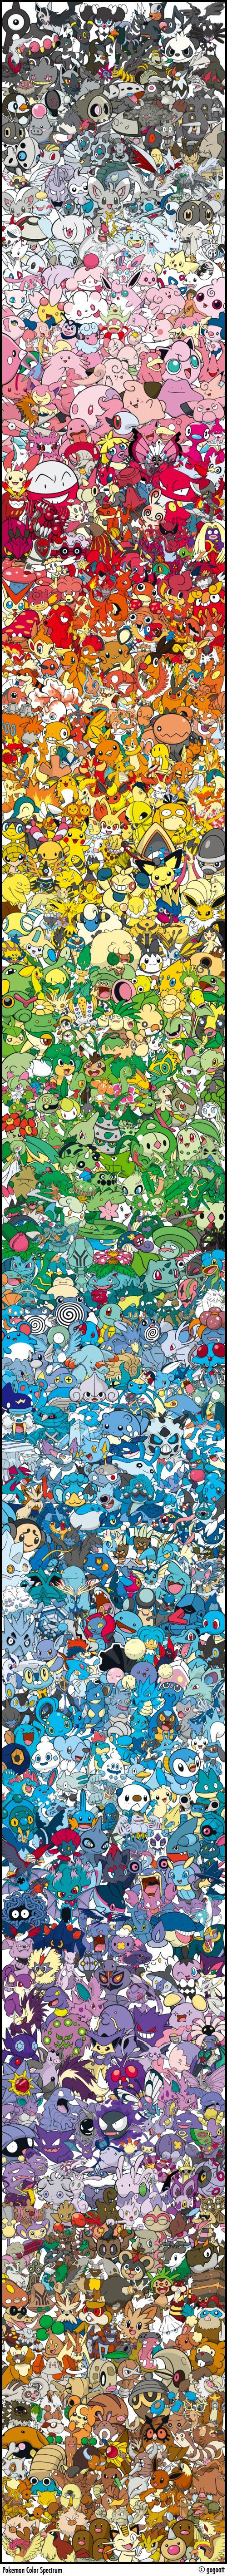 Every Pokemon grouped togeather by Color - Imgur